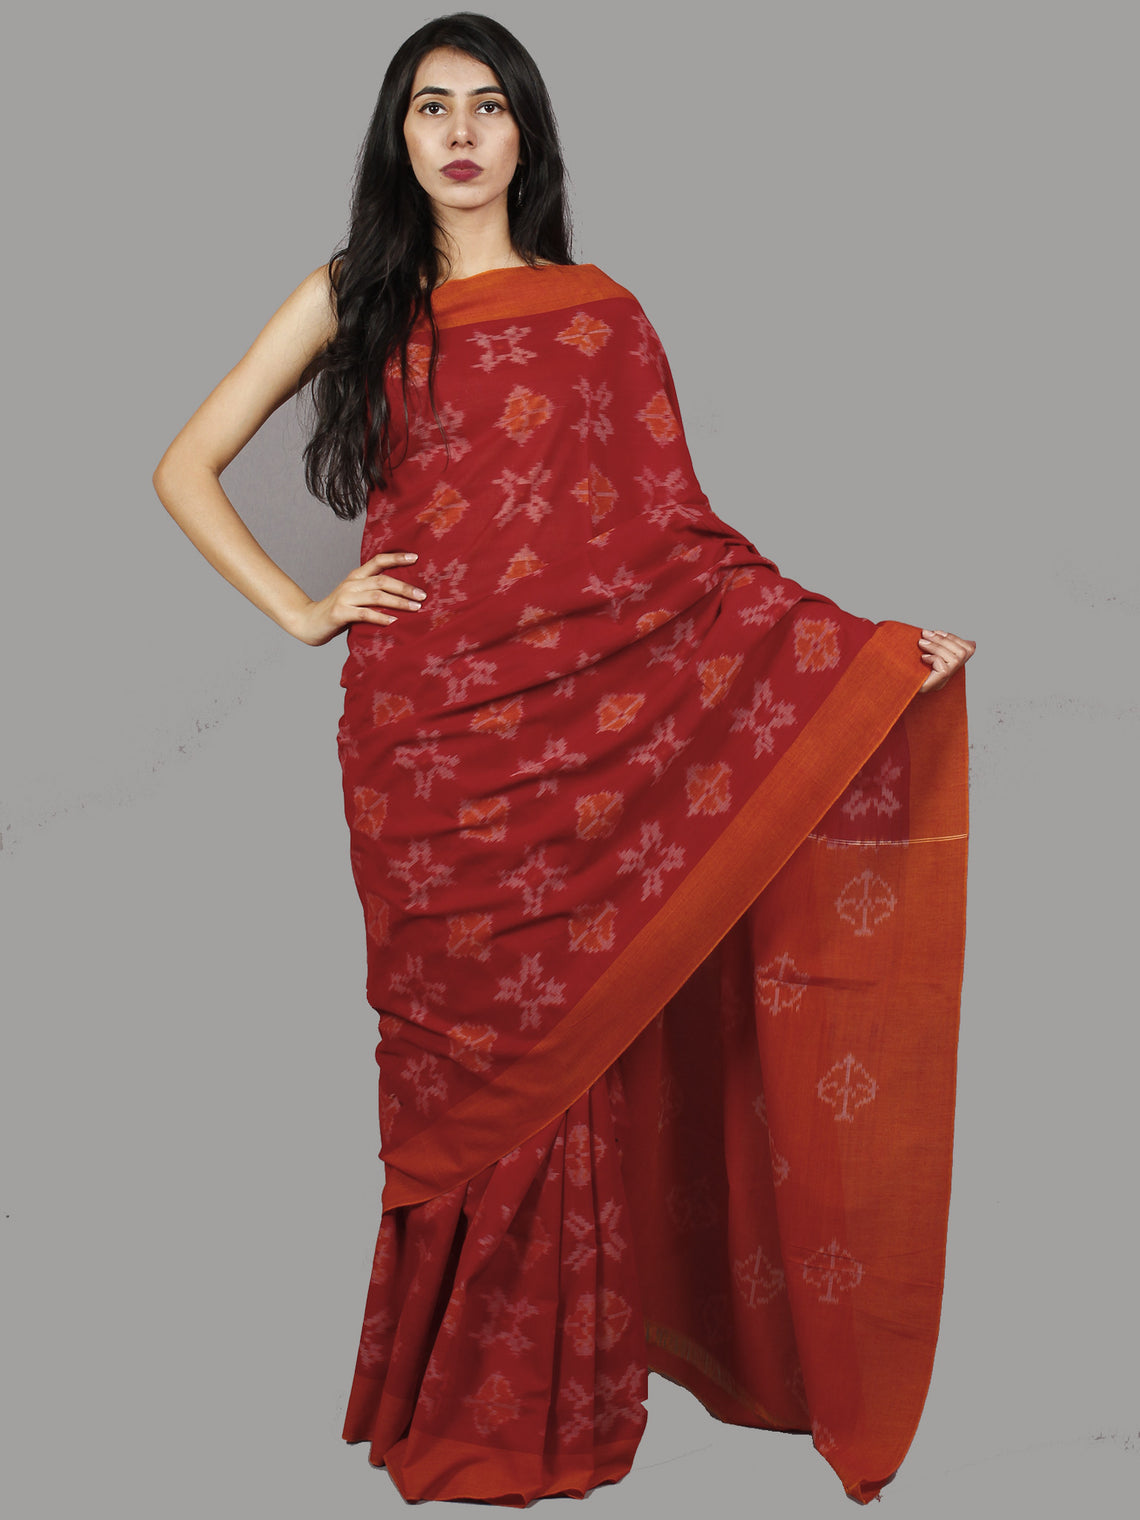 Cherry Red Rust Ivory Ikat Handwoven Pochampally Mercerized Cotton Saree - S031701437